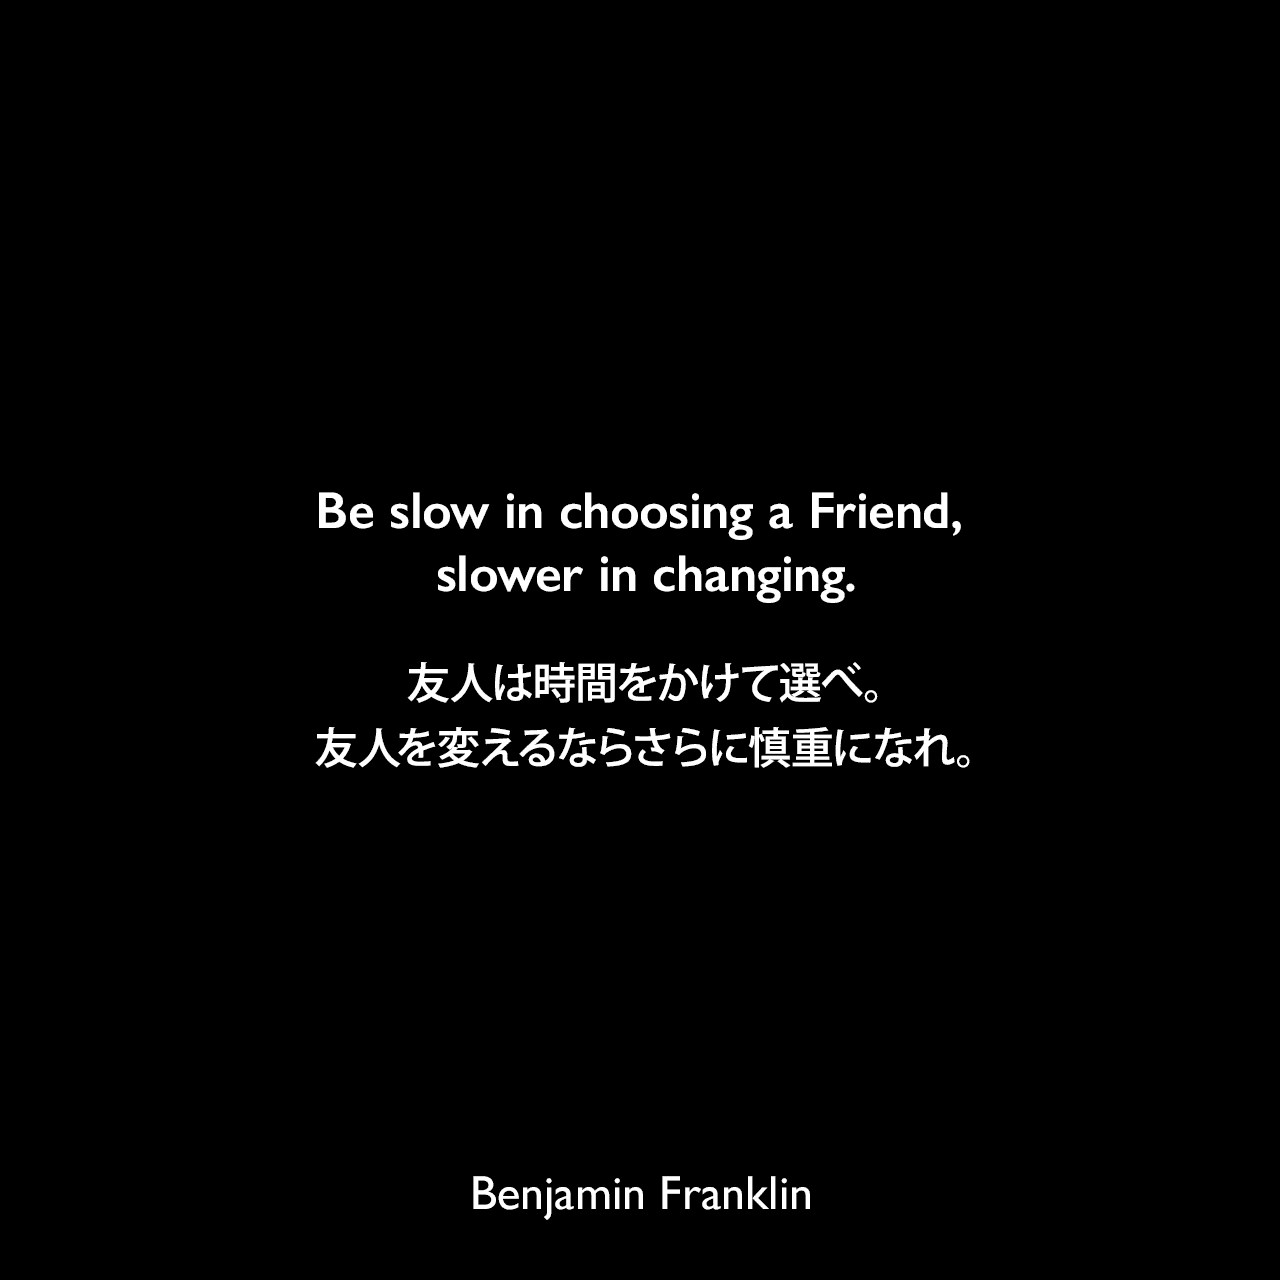 Be slow in choosing a Friend, slower in changing.友人は時間をかけて選べ。友人を変えるならさらに慎重になれ。Benjamin Franklin